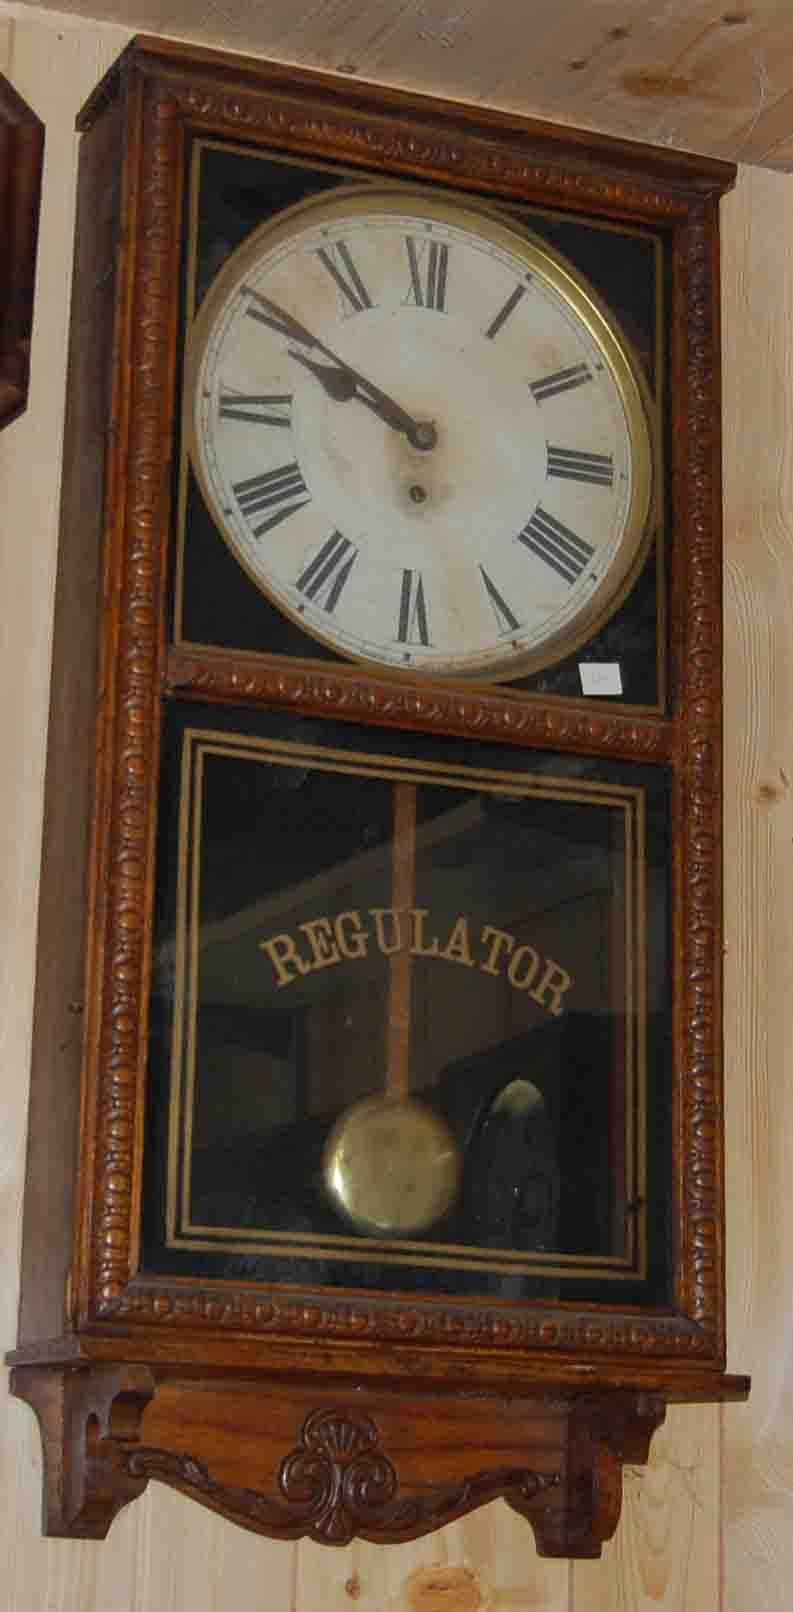 Regulator wall clock antique best 2000 antique decor ideas antique school clocks yahoo image search results amipublicfo Image collections